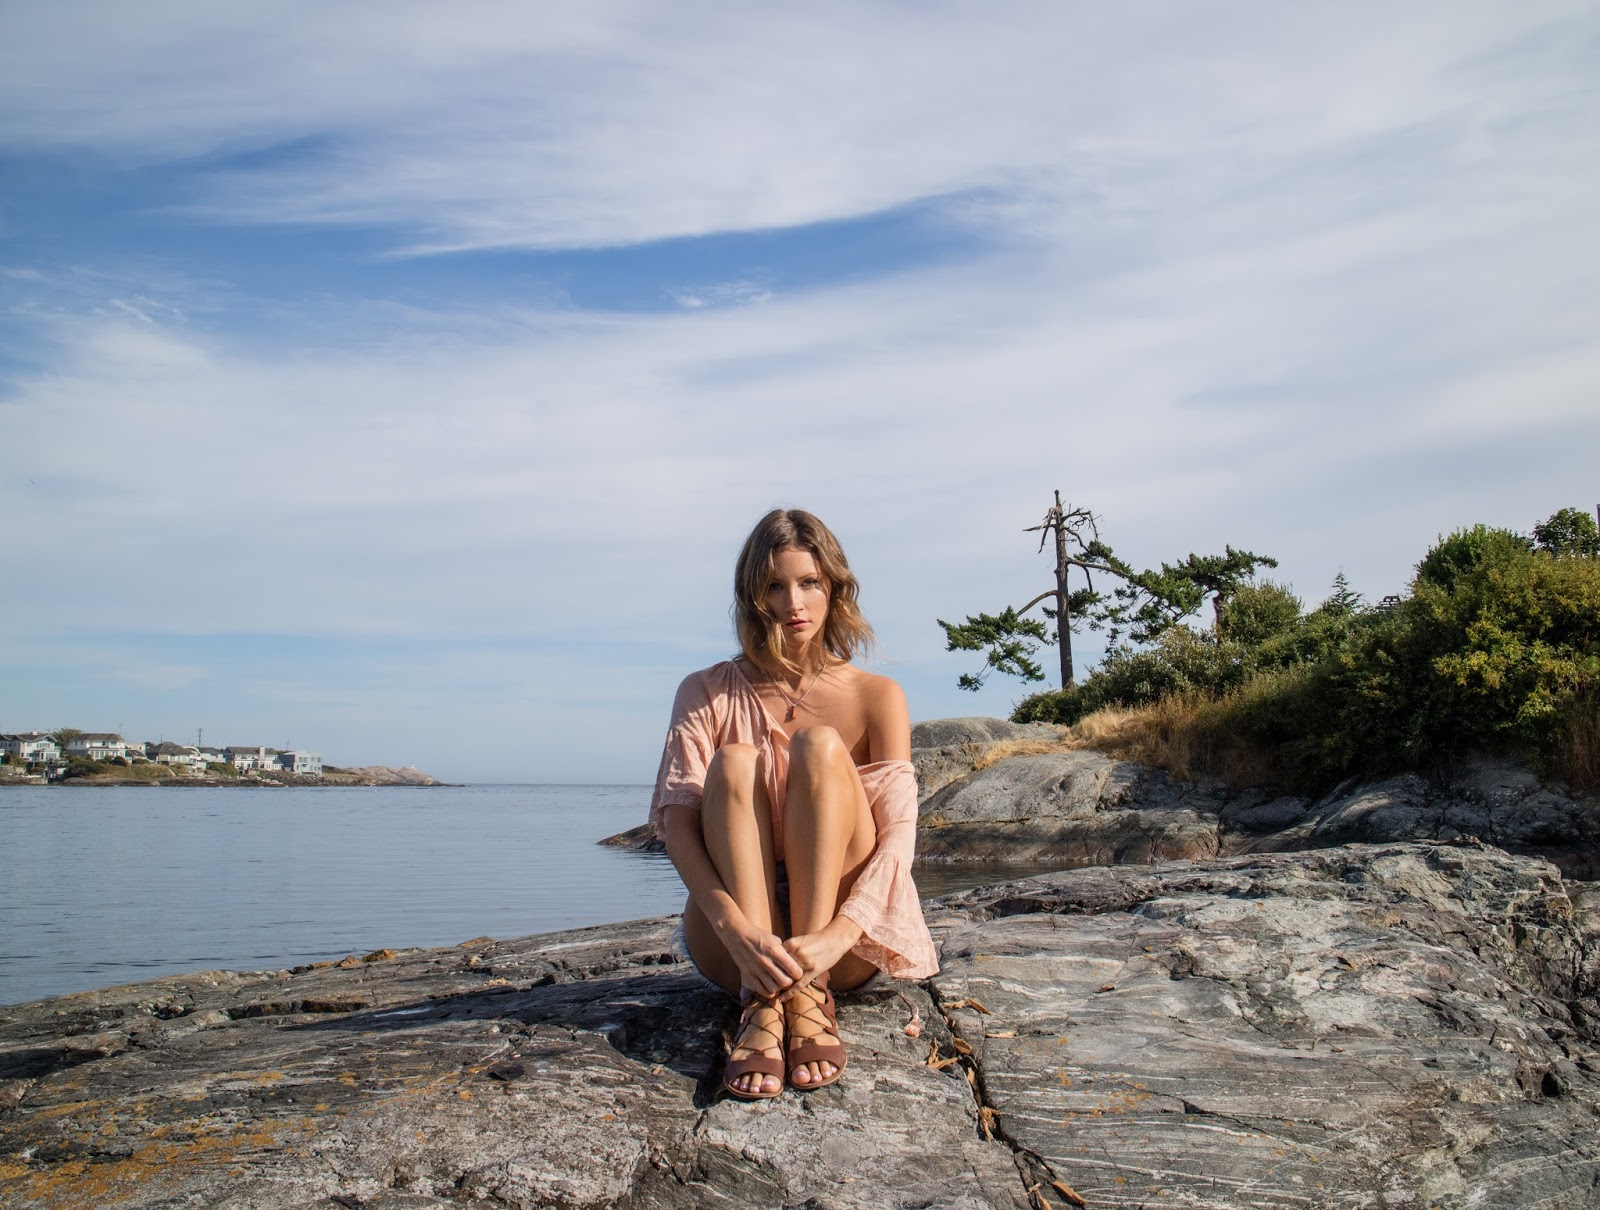 fashion blogger, Alison Hutchinson, is wearing a Zara boho off the shoulder blouse, ksubi denim cutoffs, and gladiator sandals at the beach in Victoria